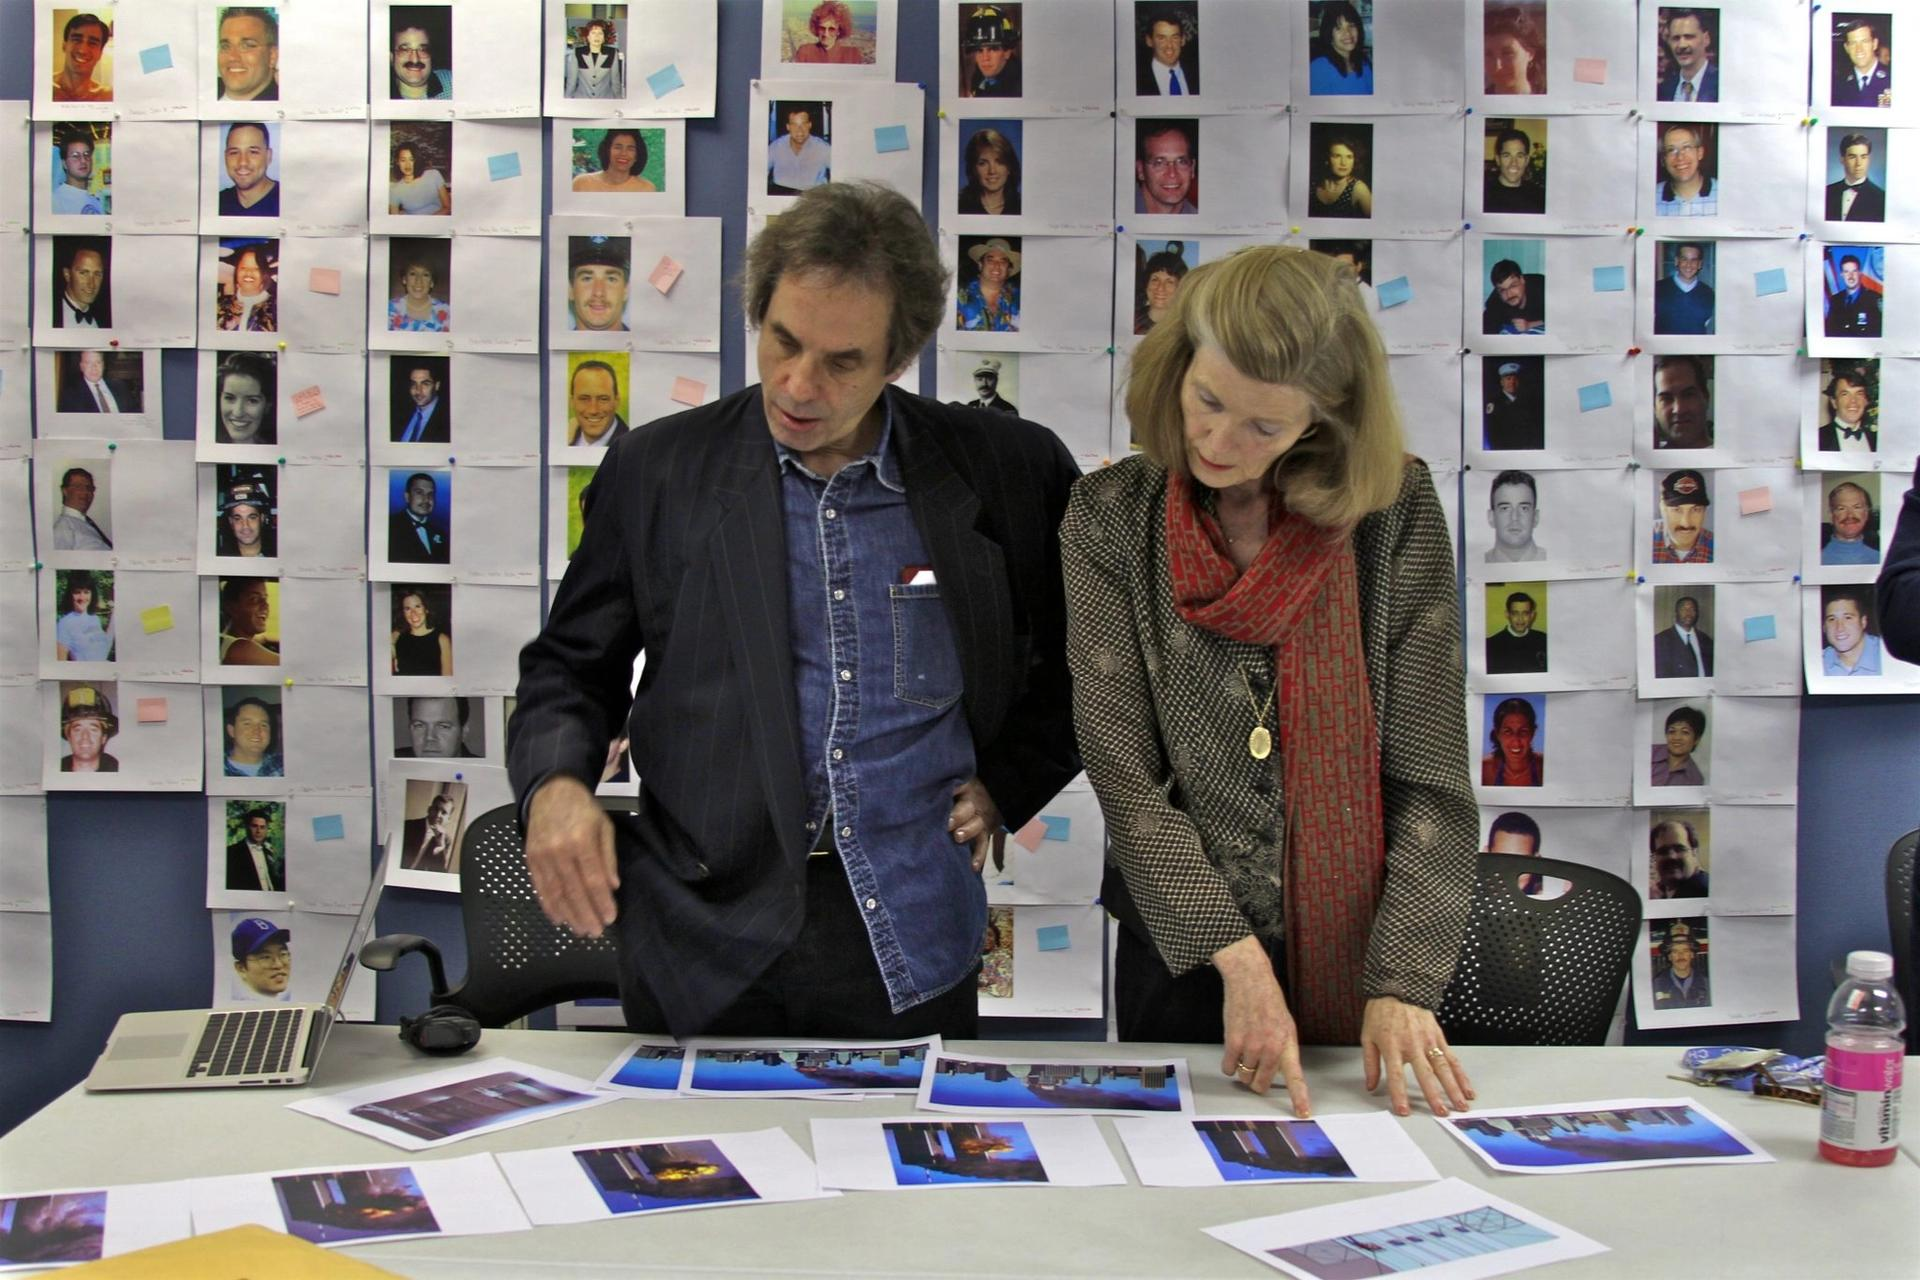 Michael Shulan, Creative Director, and Jan Seidler Ramirez/ Chief Curator & Director of Collections, Nation September 11th Memorial and Museum, reviews photographs of victims that will be included in the Memorial